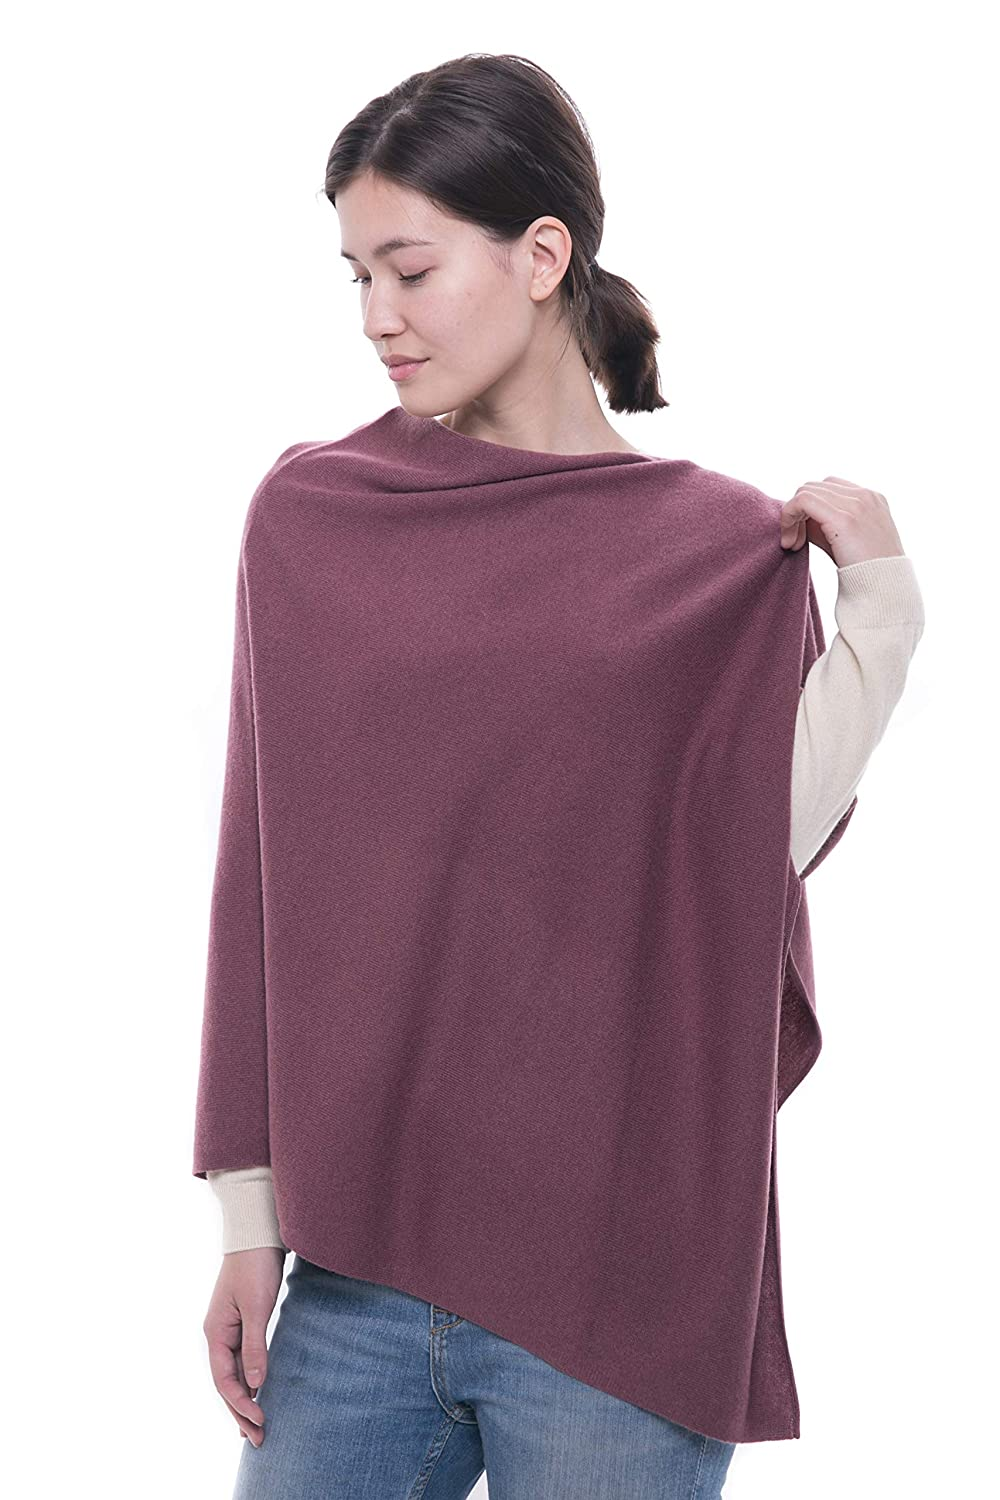 English Lavender 100% Pure Cashmere Poncho  Women's Draped Poncho, Cape and Dress Topper by Goyo Cashmere